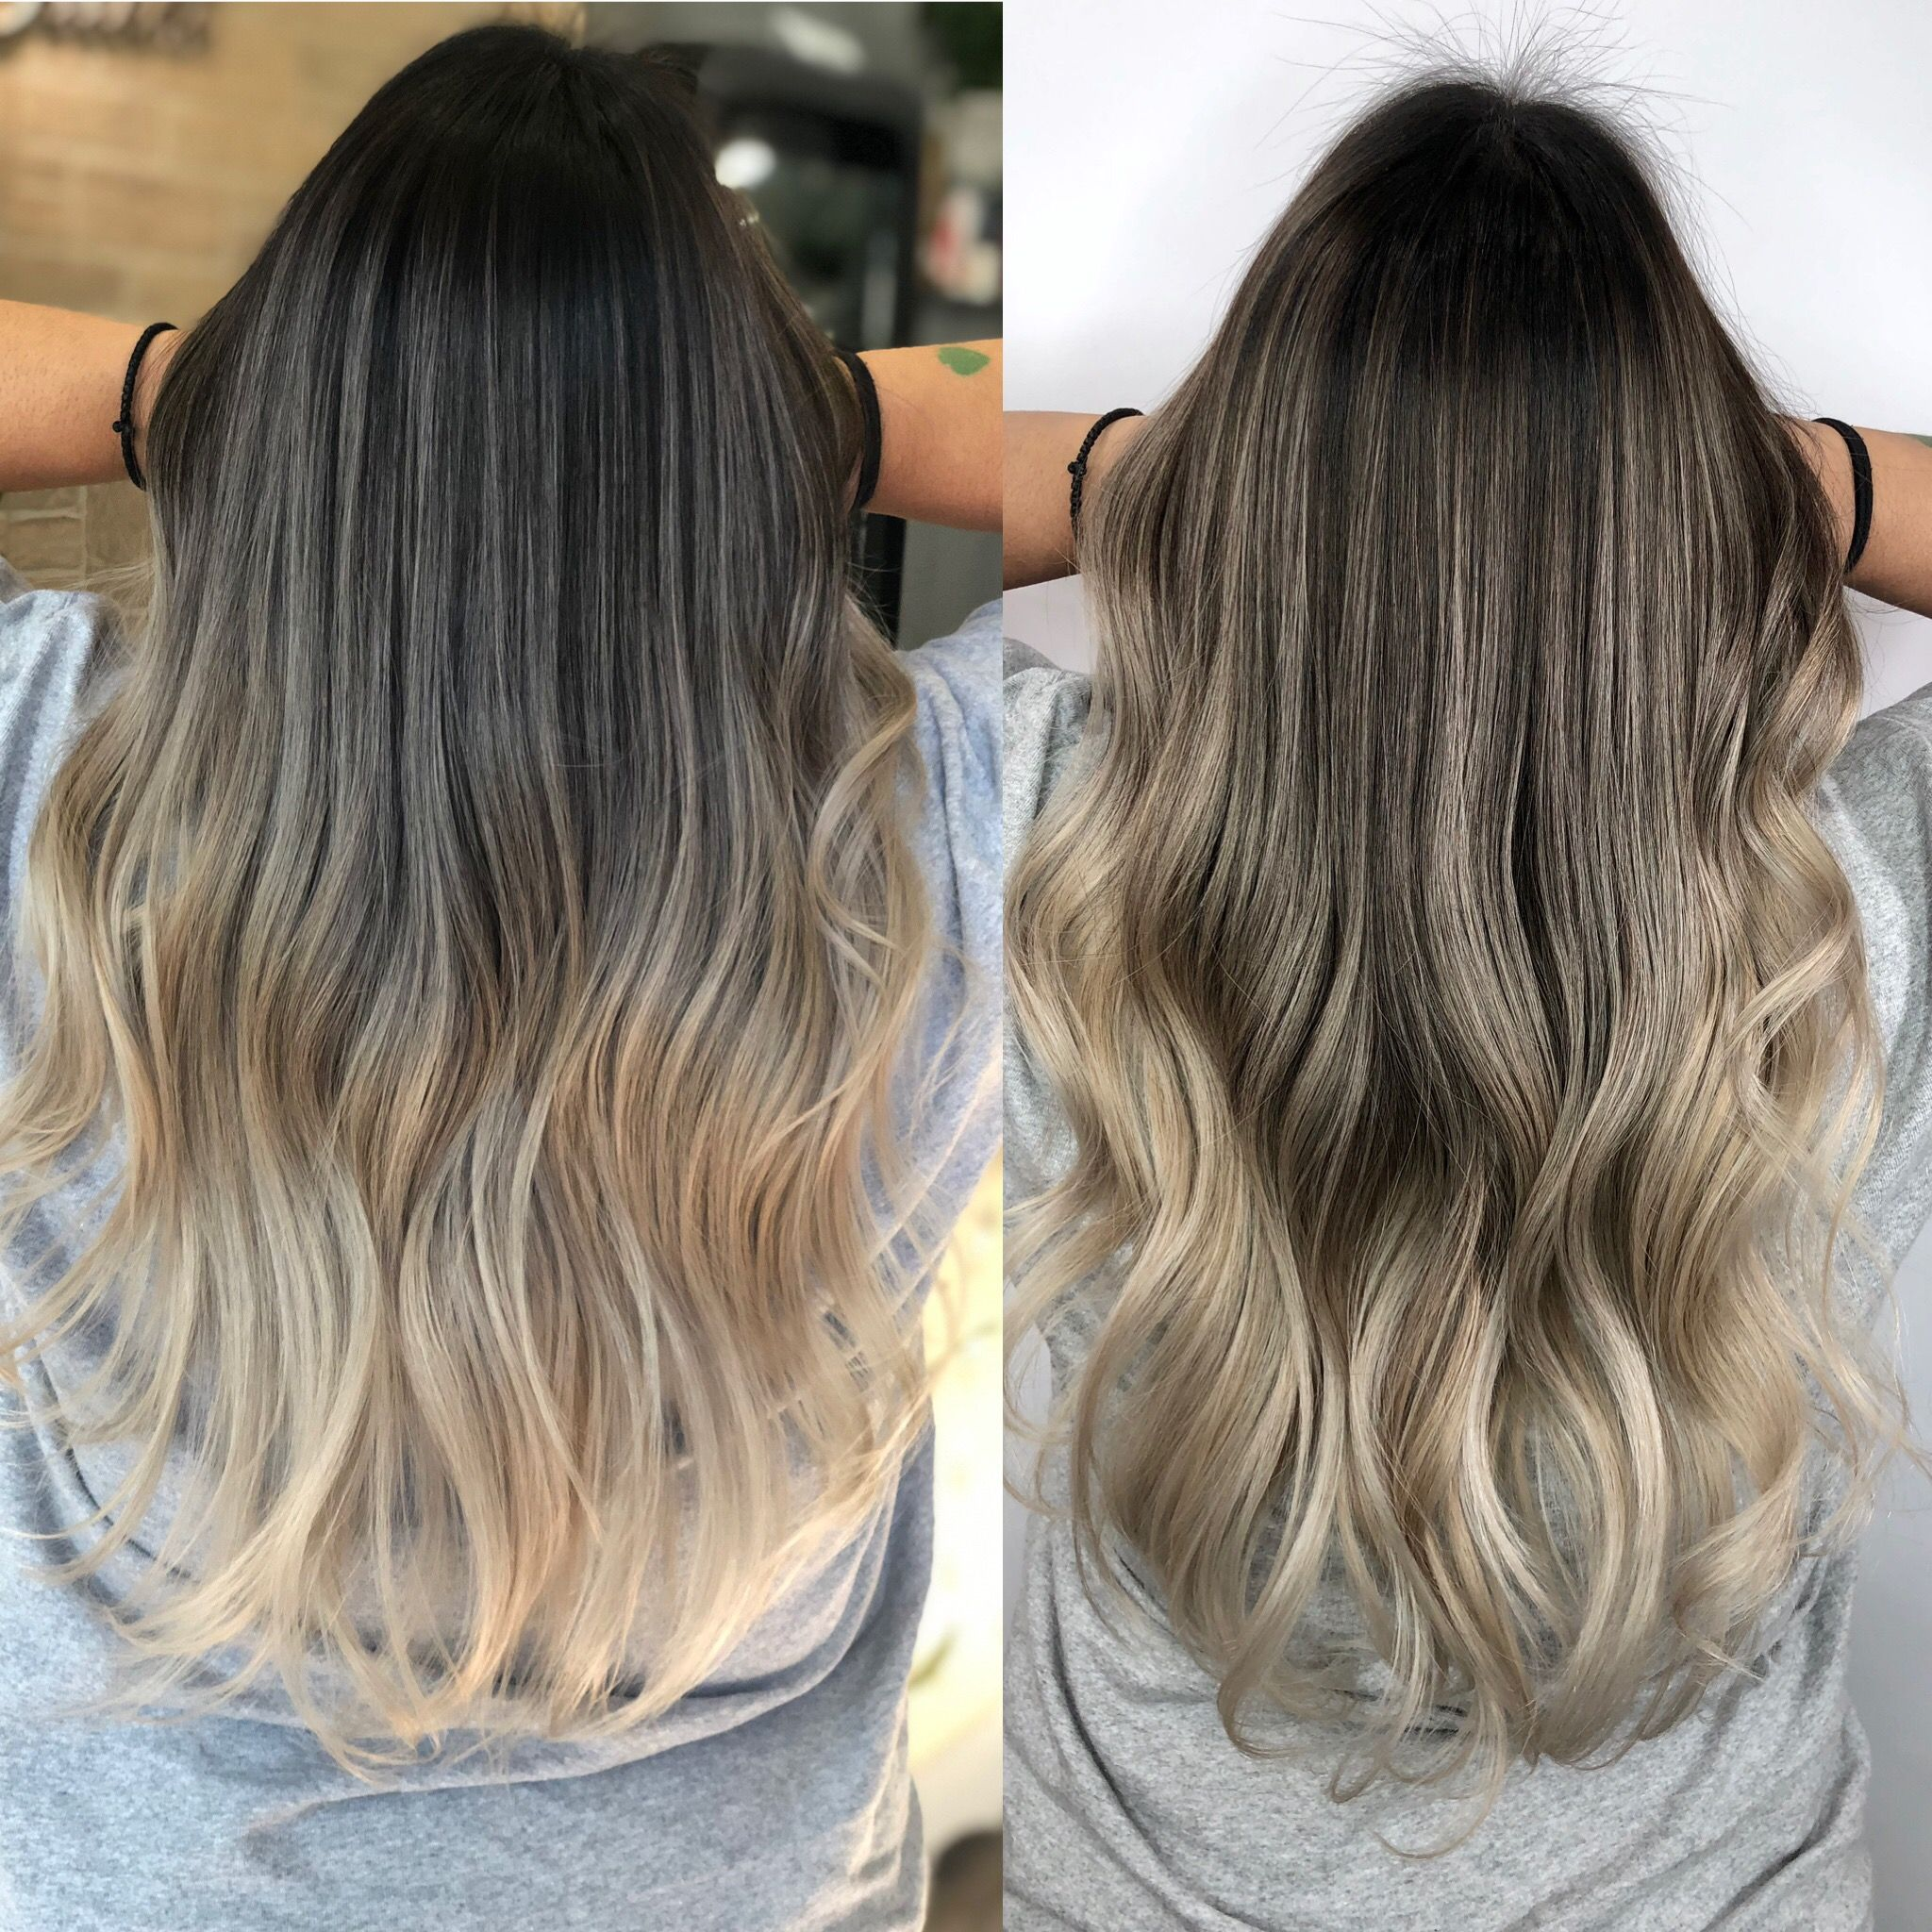 Ashbrown Blonde Balayage By The Xcellentteam Xcellentbeautysalon Xcellent Jessie Blonde Balayage Hair Inspo Color Best Hair Salon